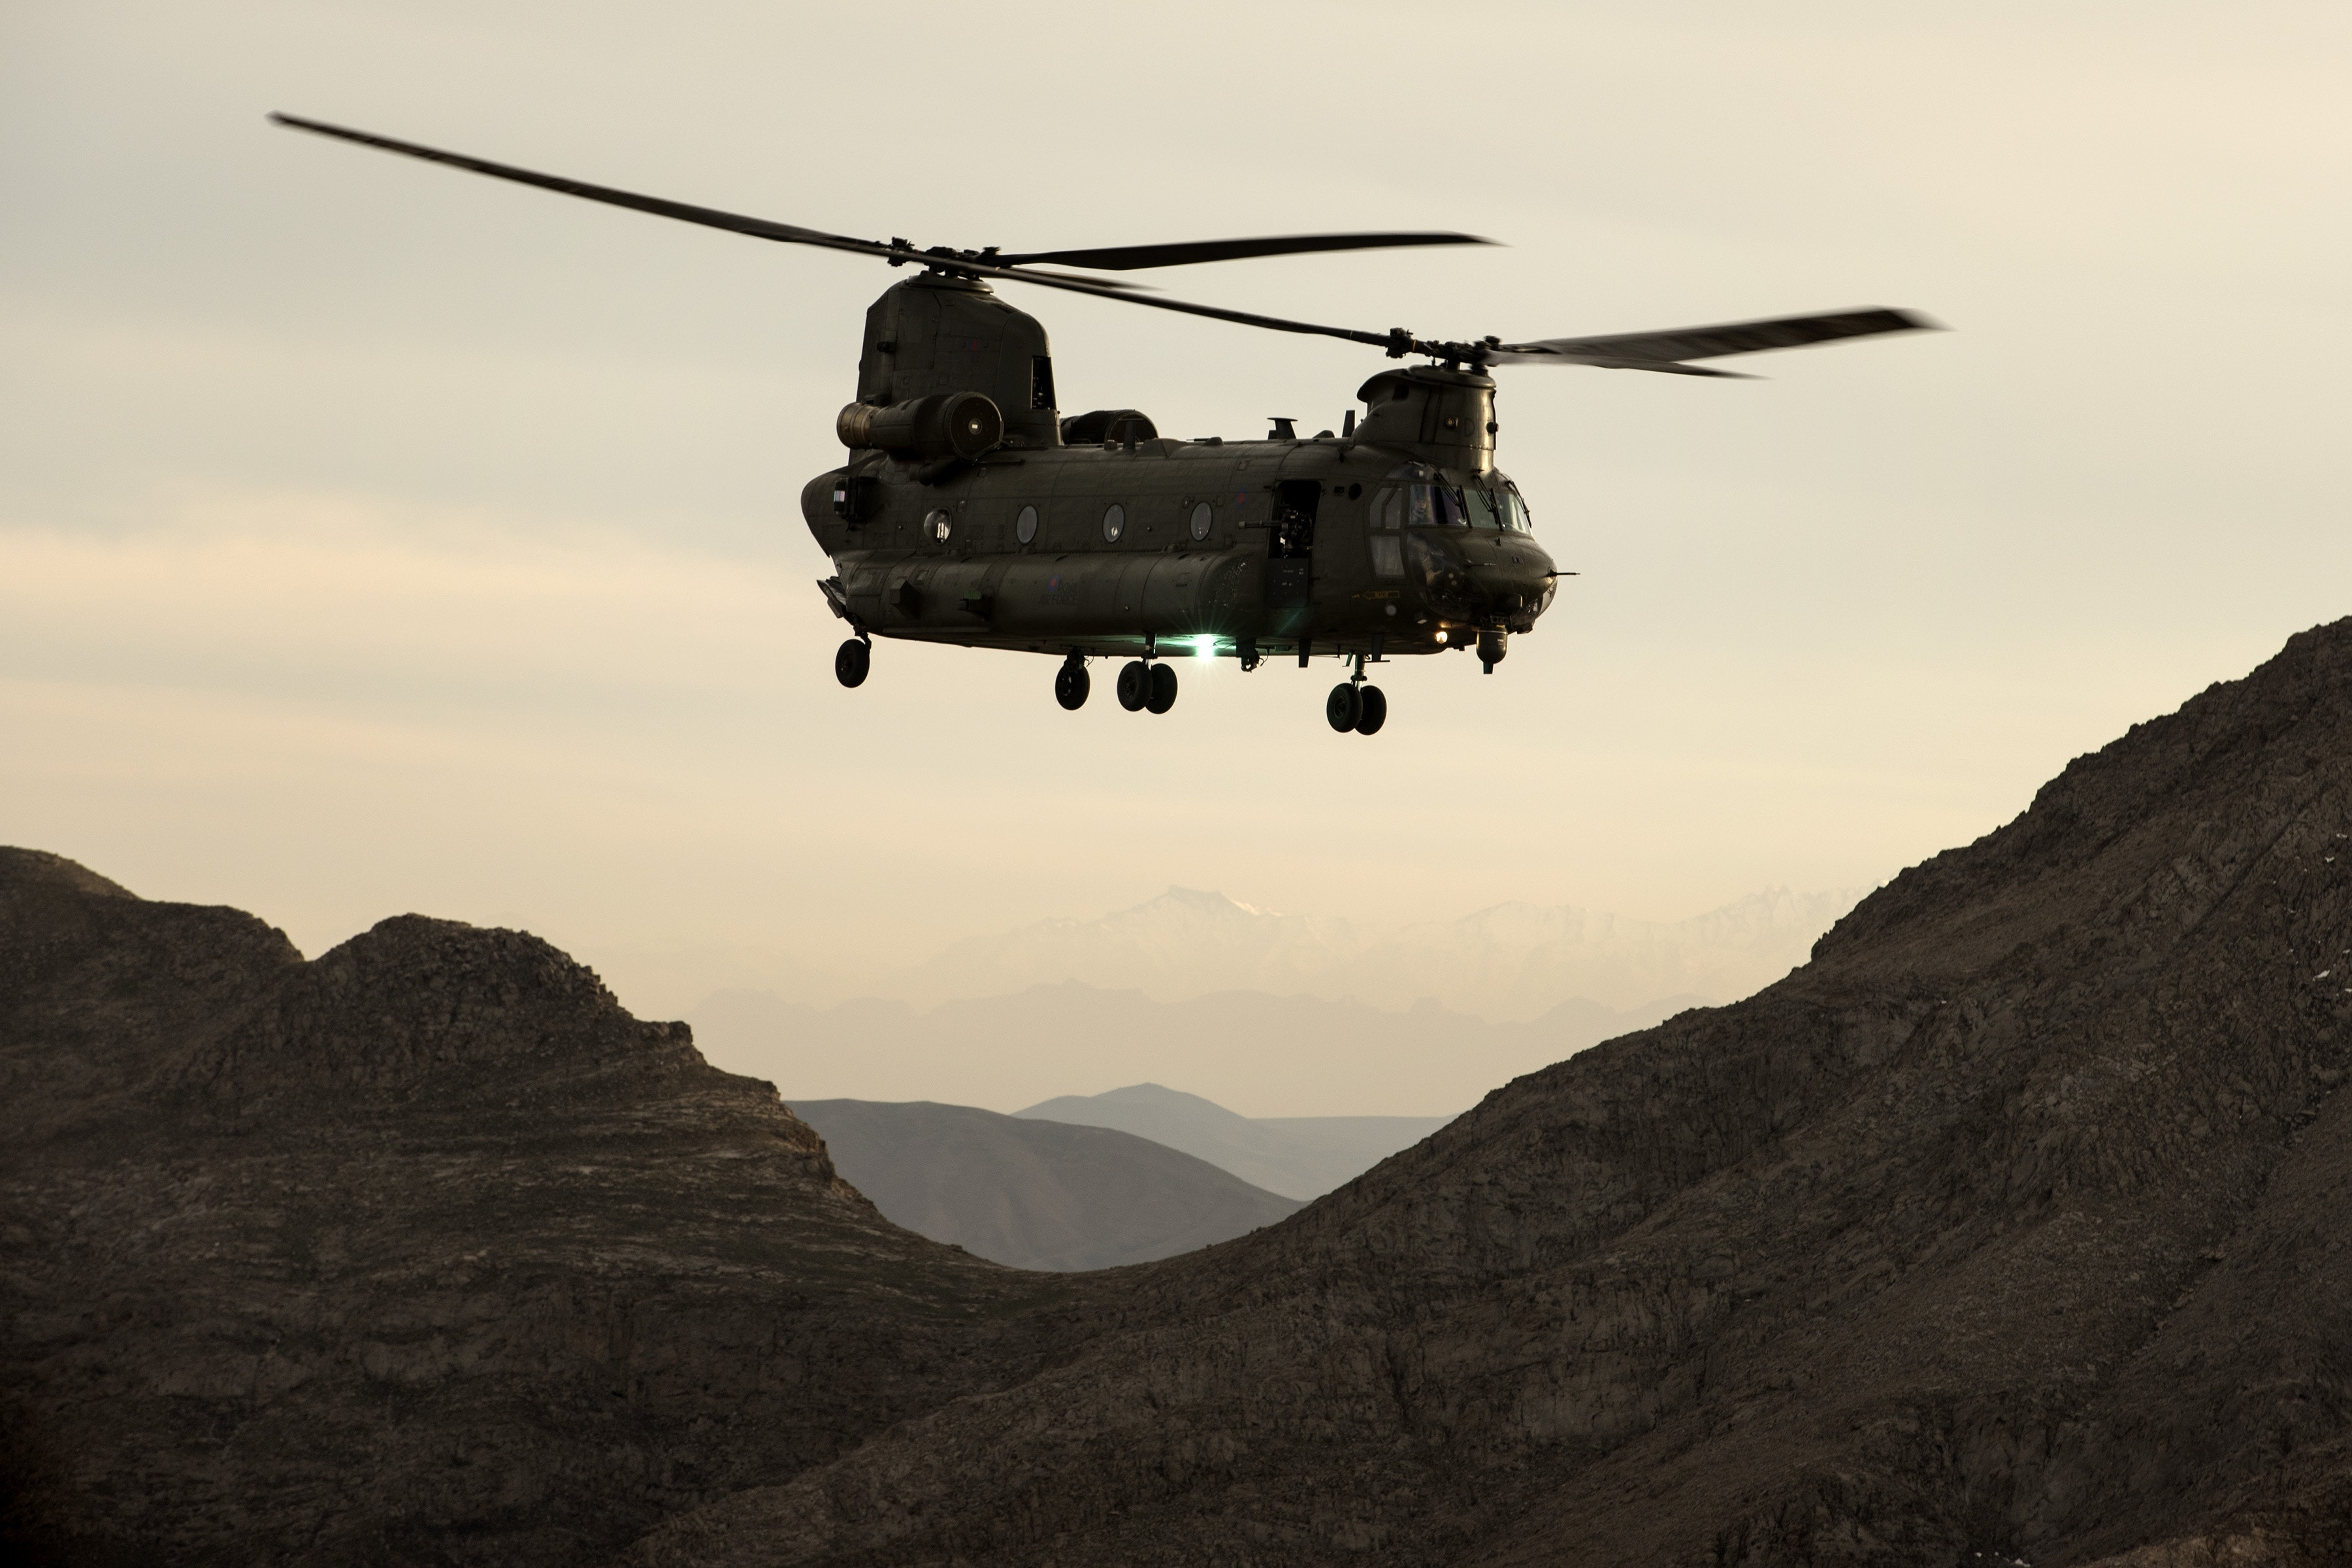 An RAF Chinook helicopter flying over the mountains of Afghanistan. Synonymous with operations in Afghanistan over the last thirteen years, the Chinook Force flew over 41,000 hours, extracted 13,000 casualties and its crews have been awarded numerous gallantry awards, including twenty three distinguished flying crosses for bravery in the air.